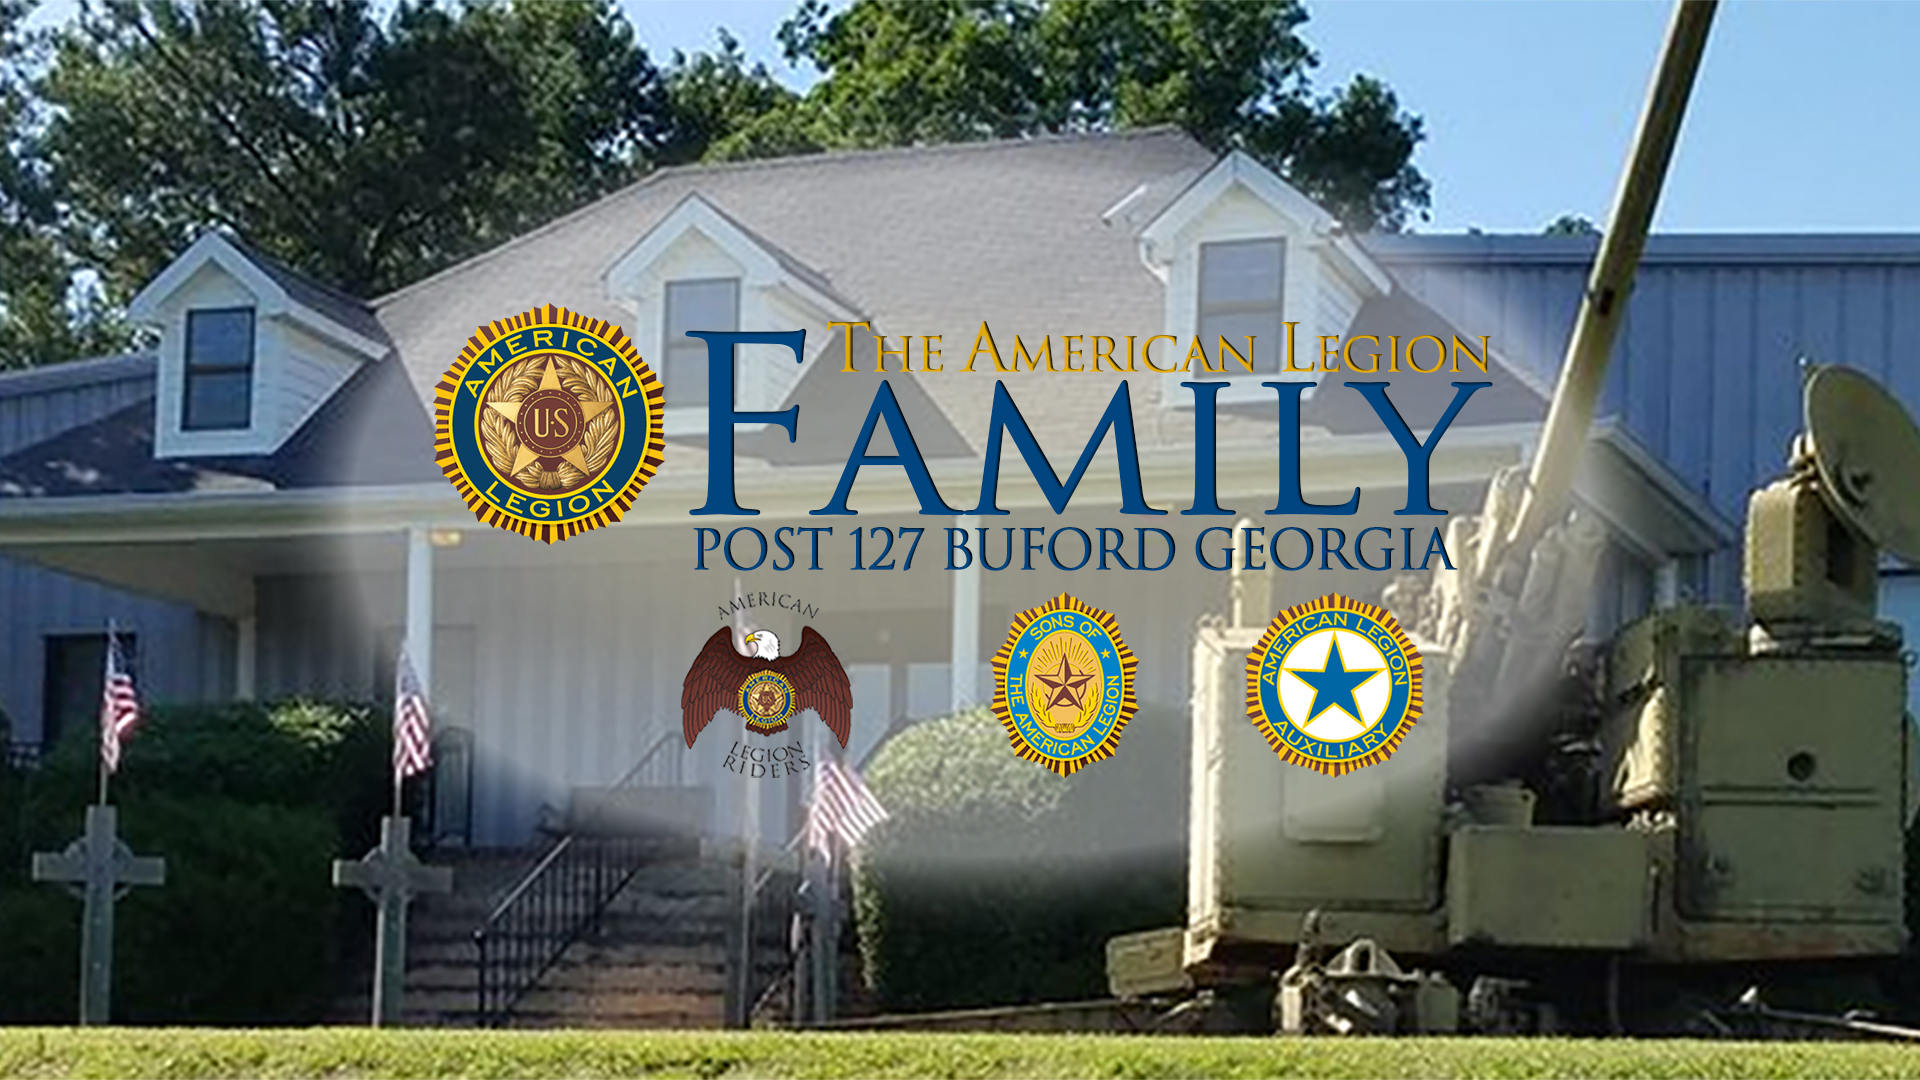 American Legion Post 127 Buford